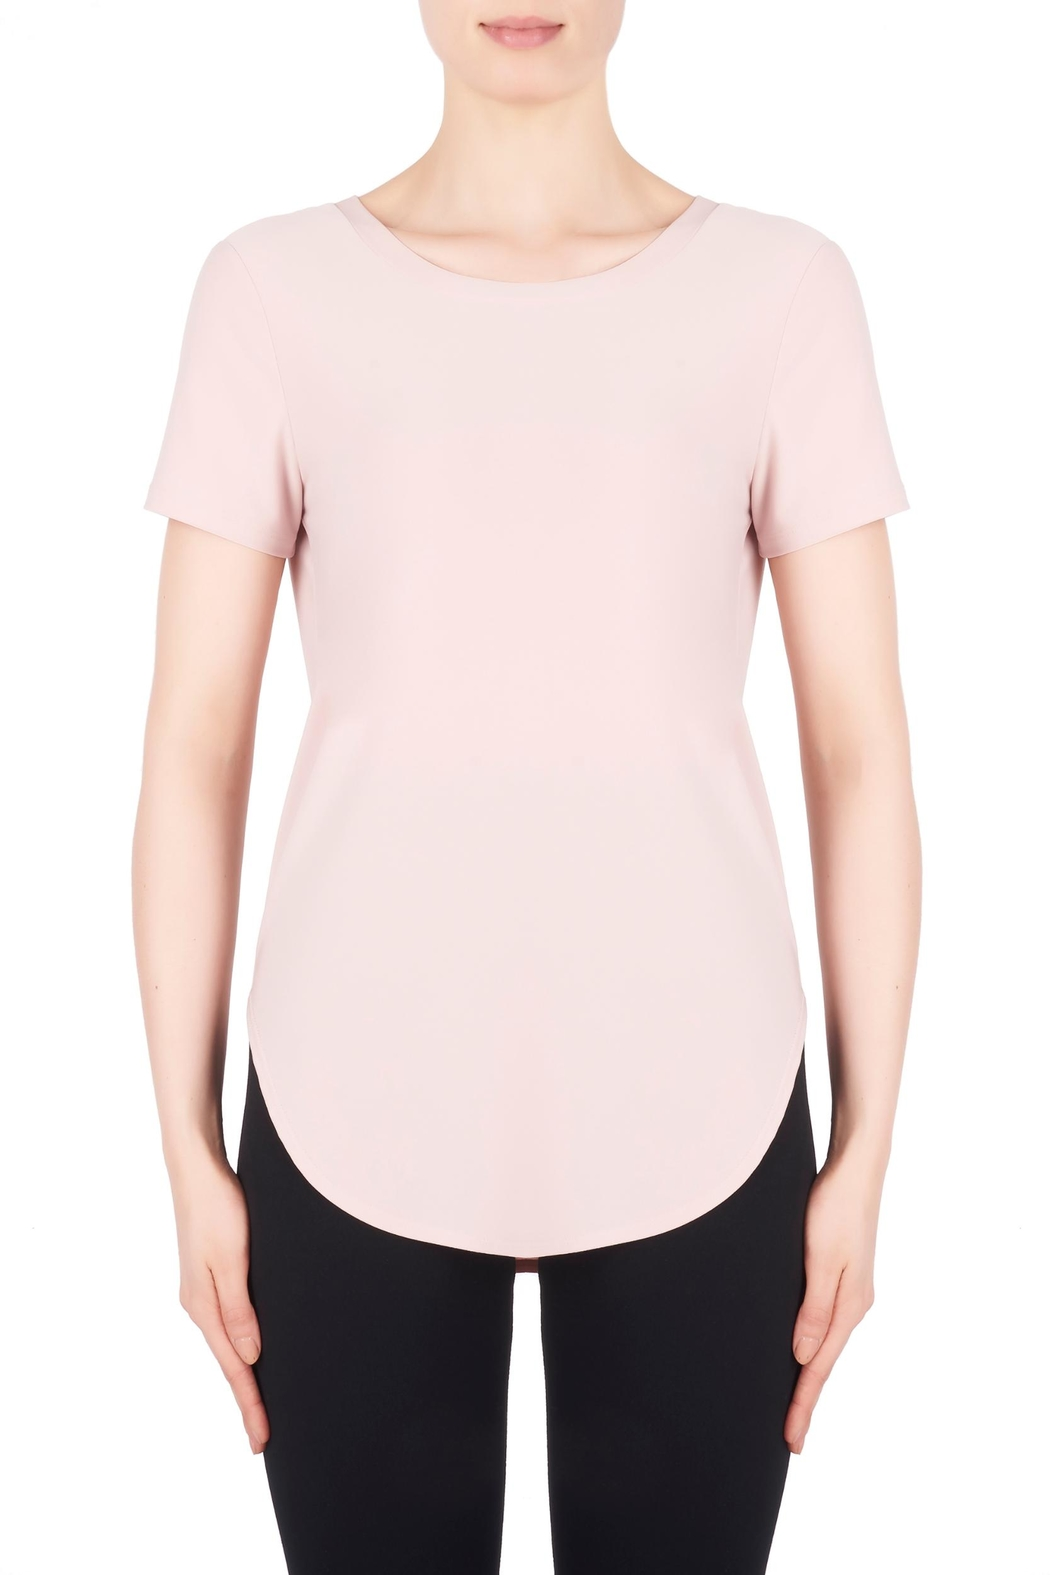 Joseph Ribkoff Short Sleeve Top - Front Cropped Image